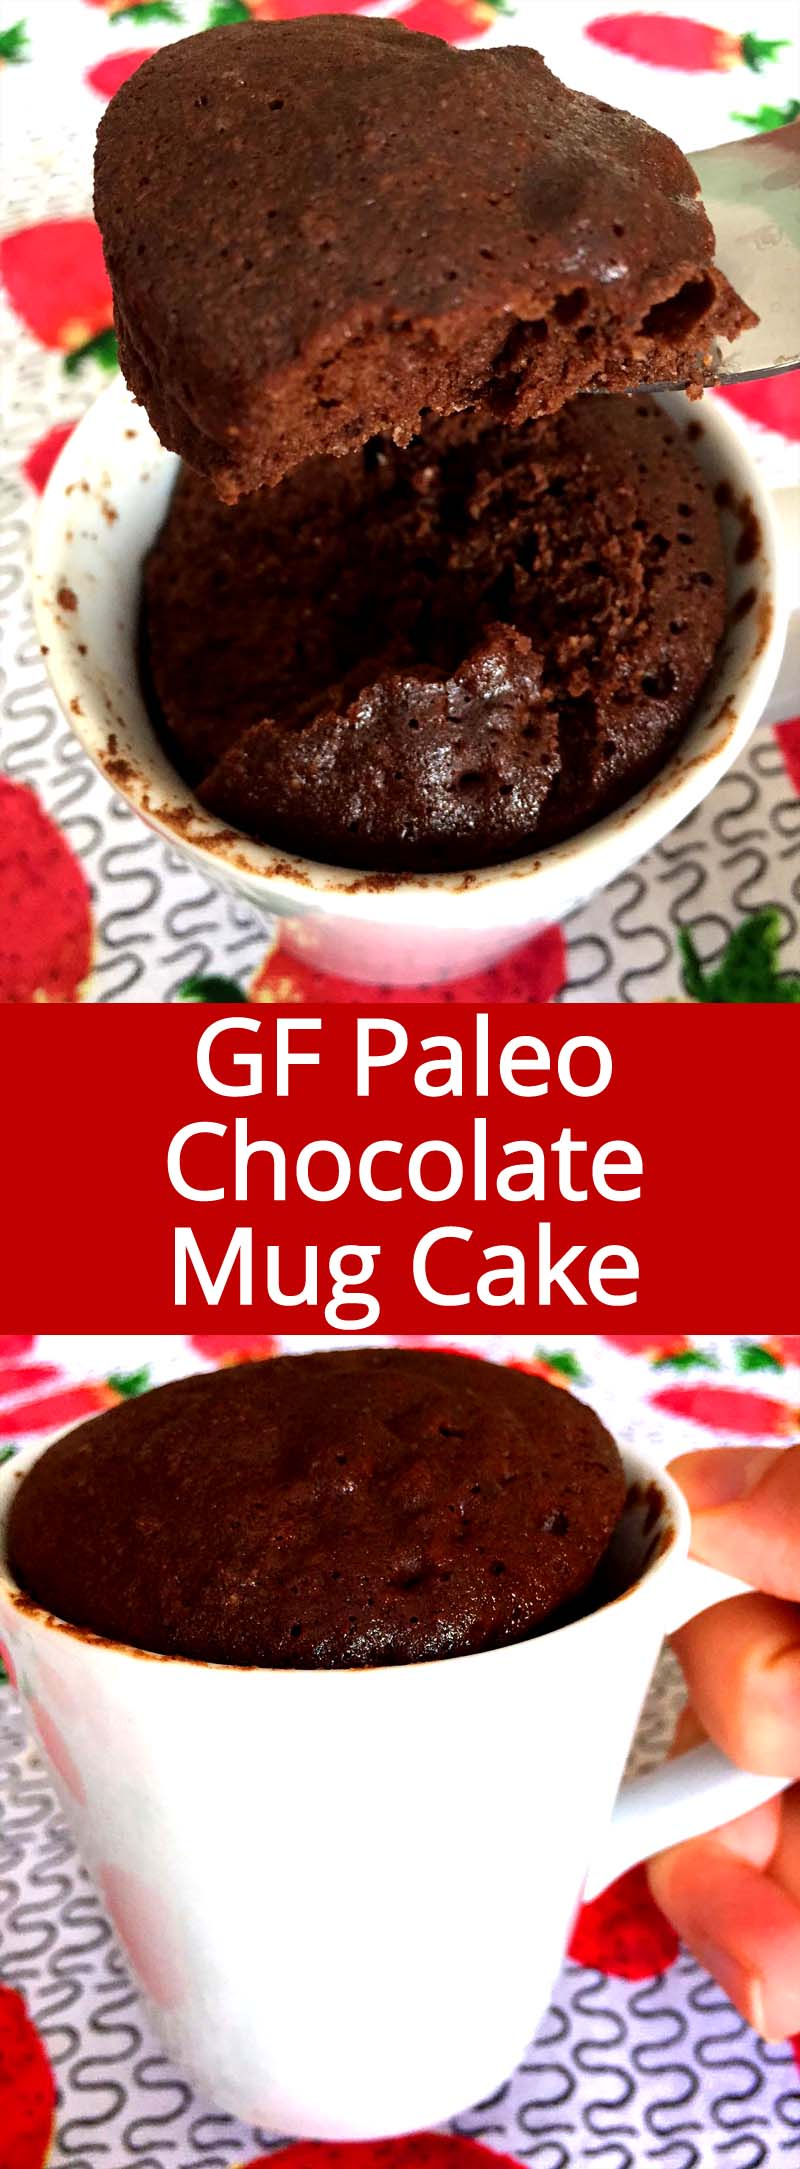 OMG this is the best paleo chocolate mug cake recipe ever!  This chocolate mug cake is so good and rich! Hard to believe it's healthy!!! It's high in protein, gluten-free and free of refined sugar - this chocolate cake is now my favorite breakfast!